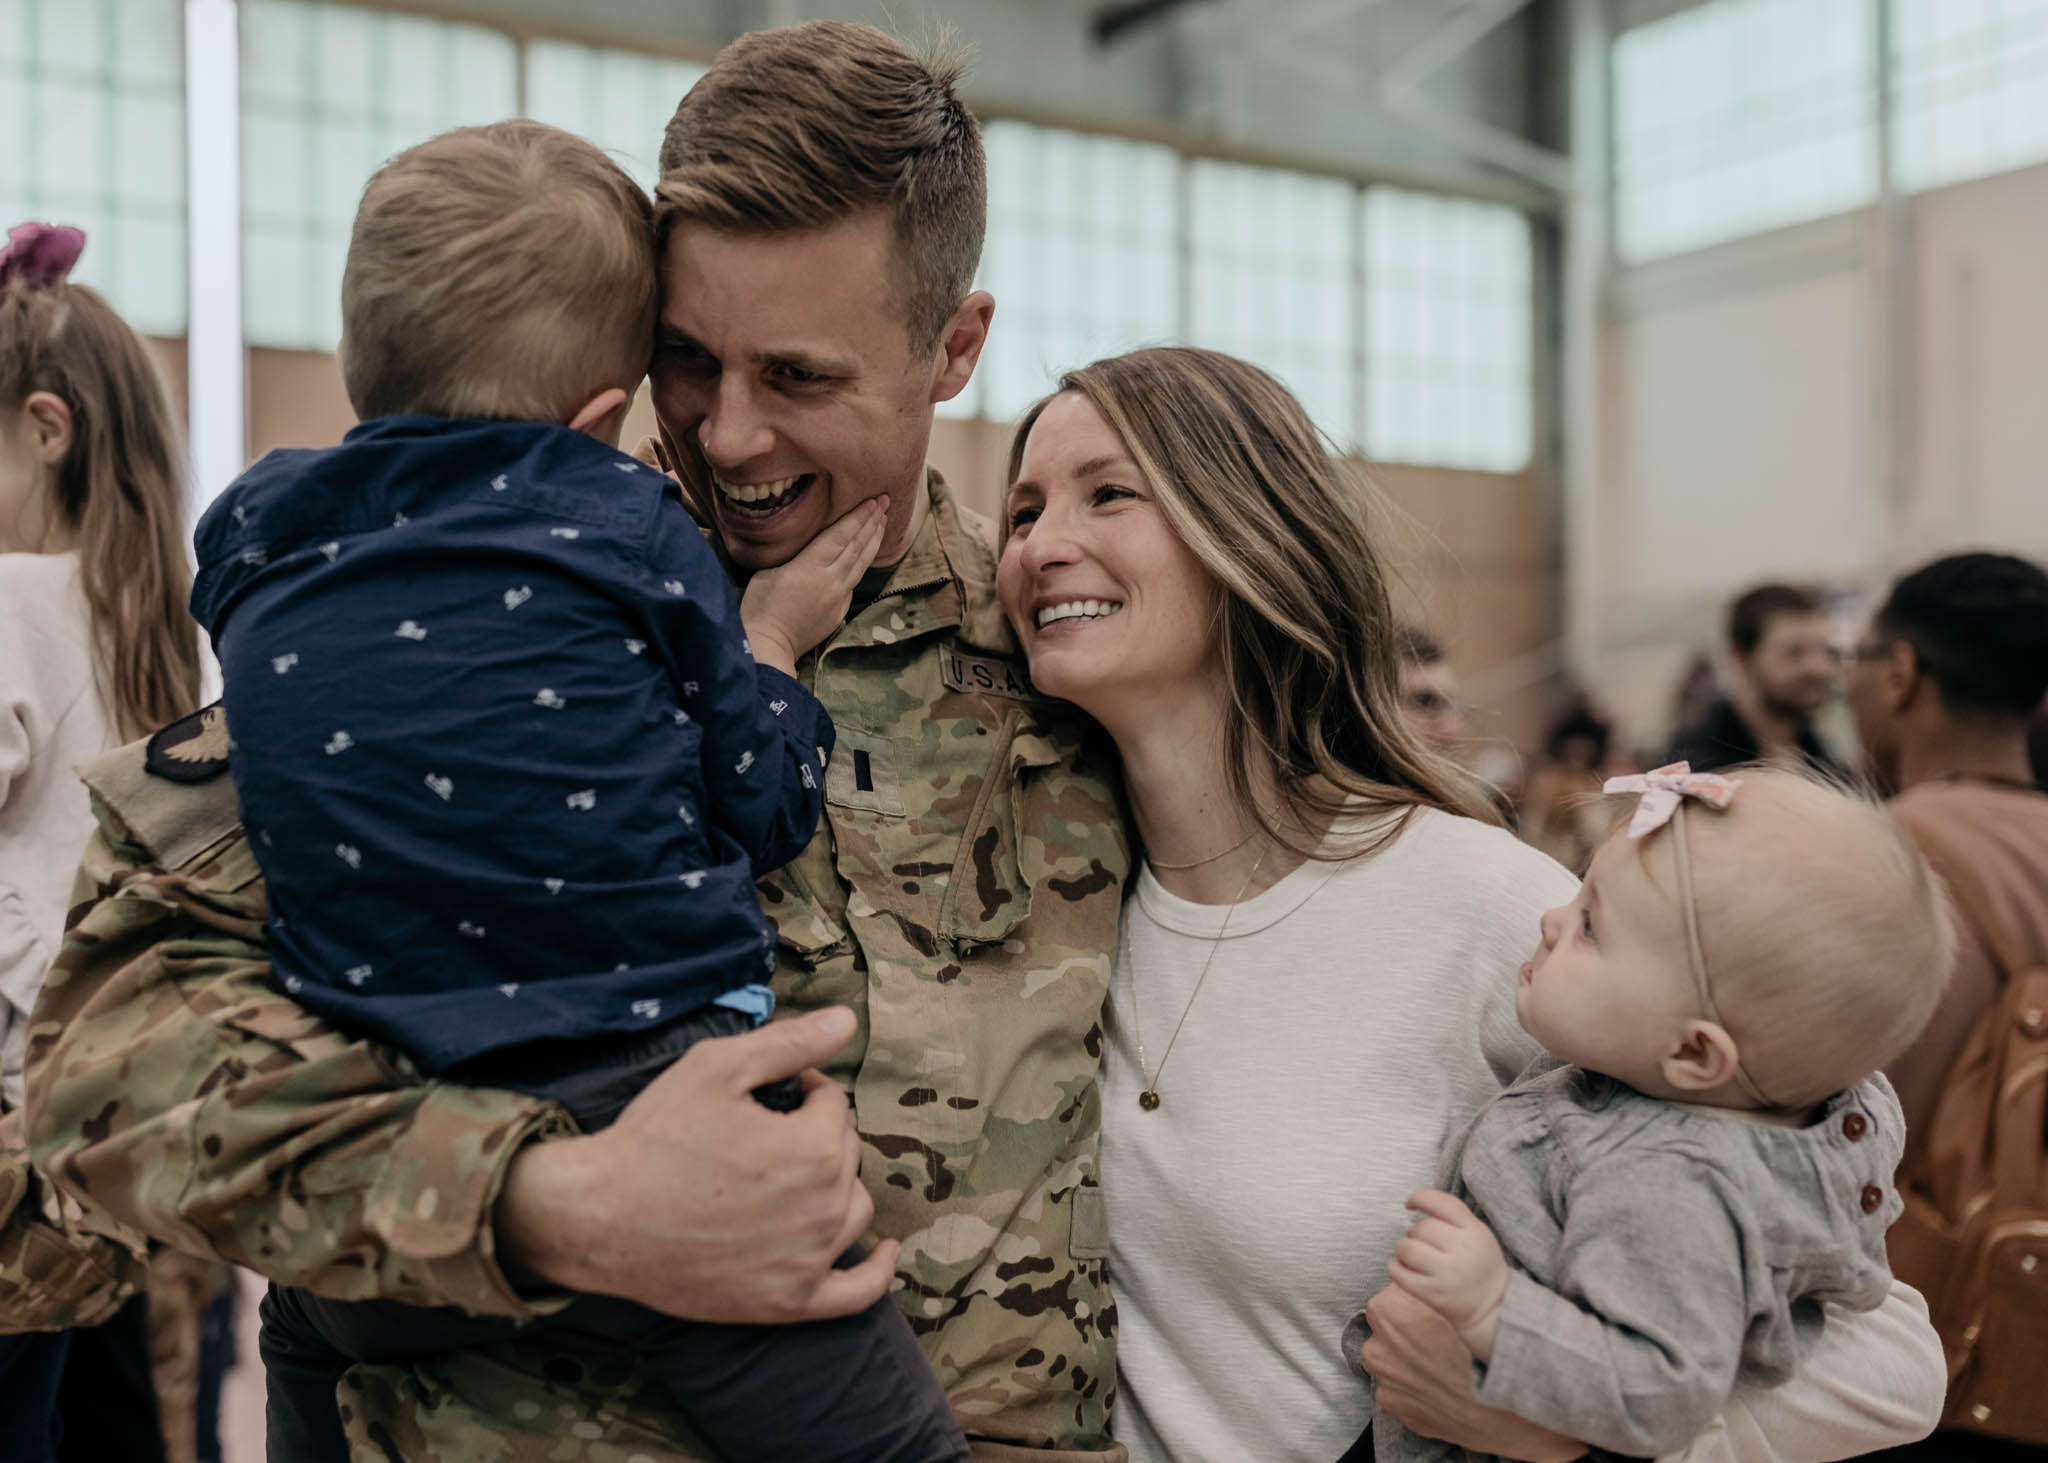 Military Family Embracing